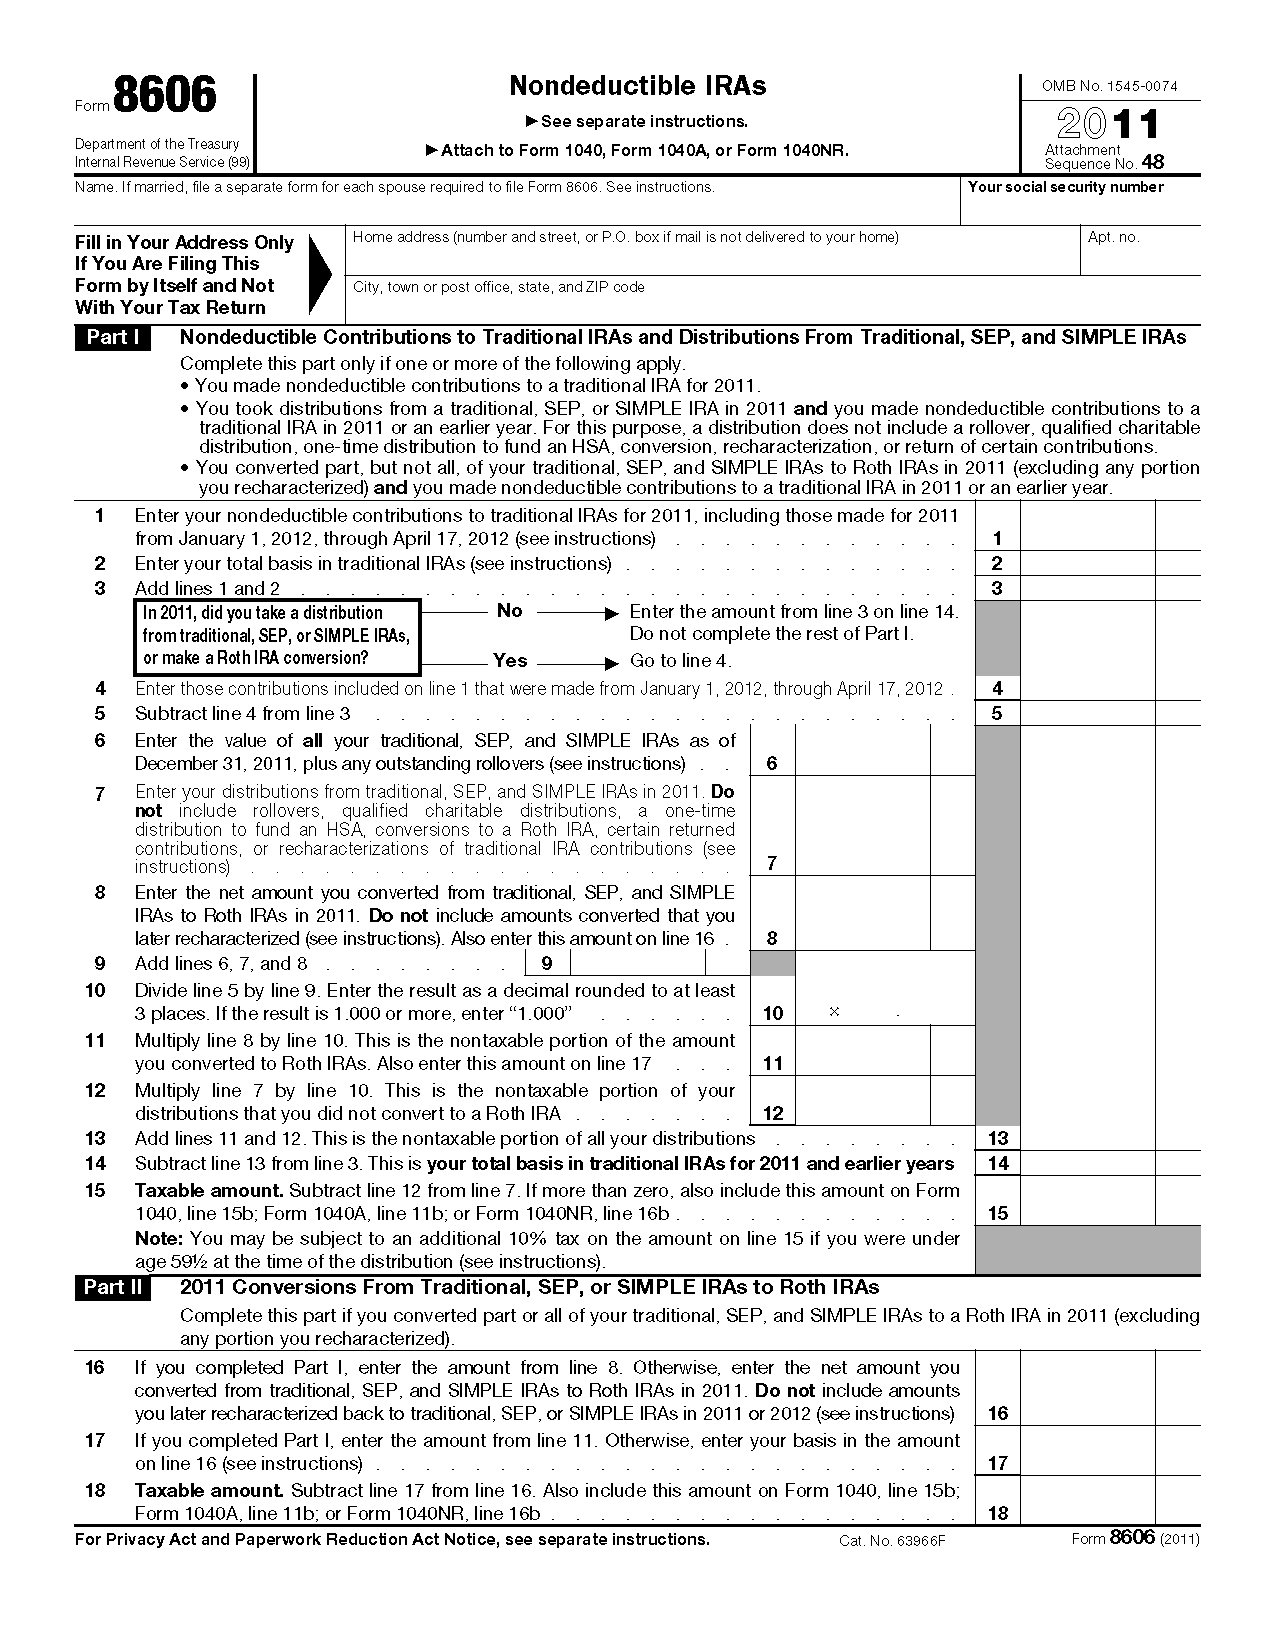 Printable 2011 1040ez tax form for 1040ez 2012 tax table